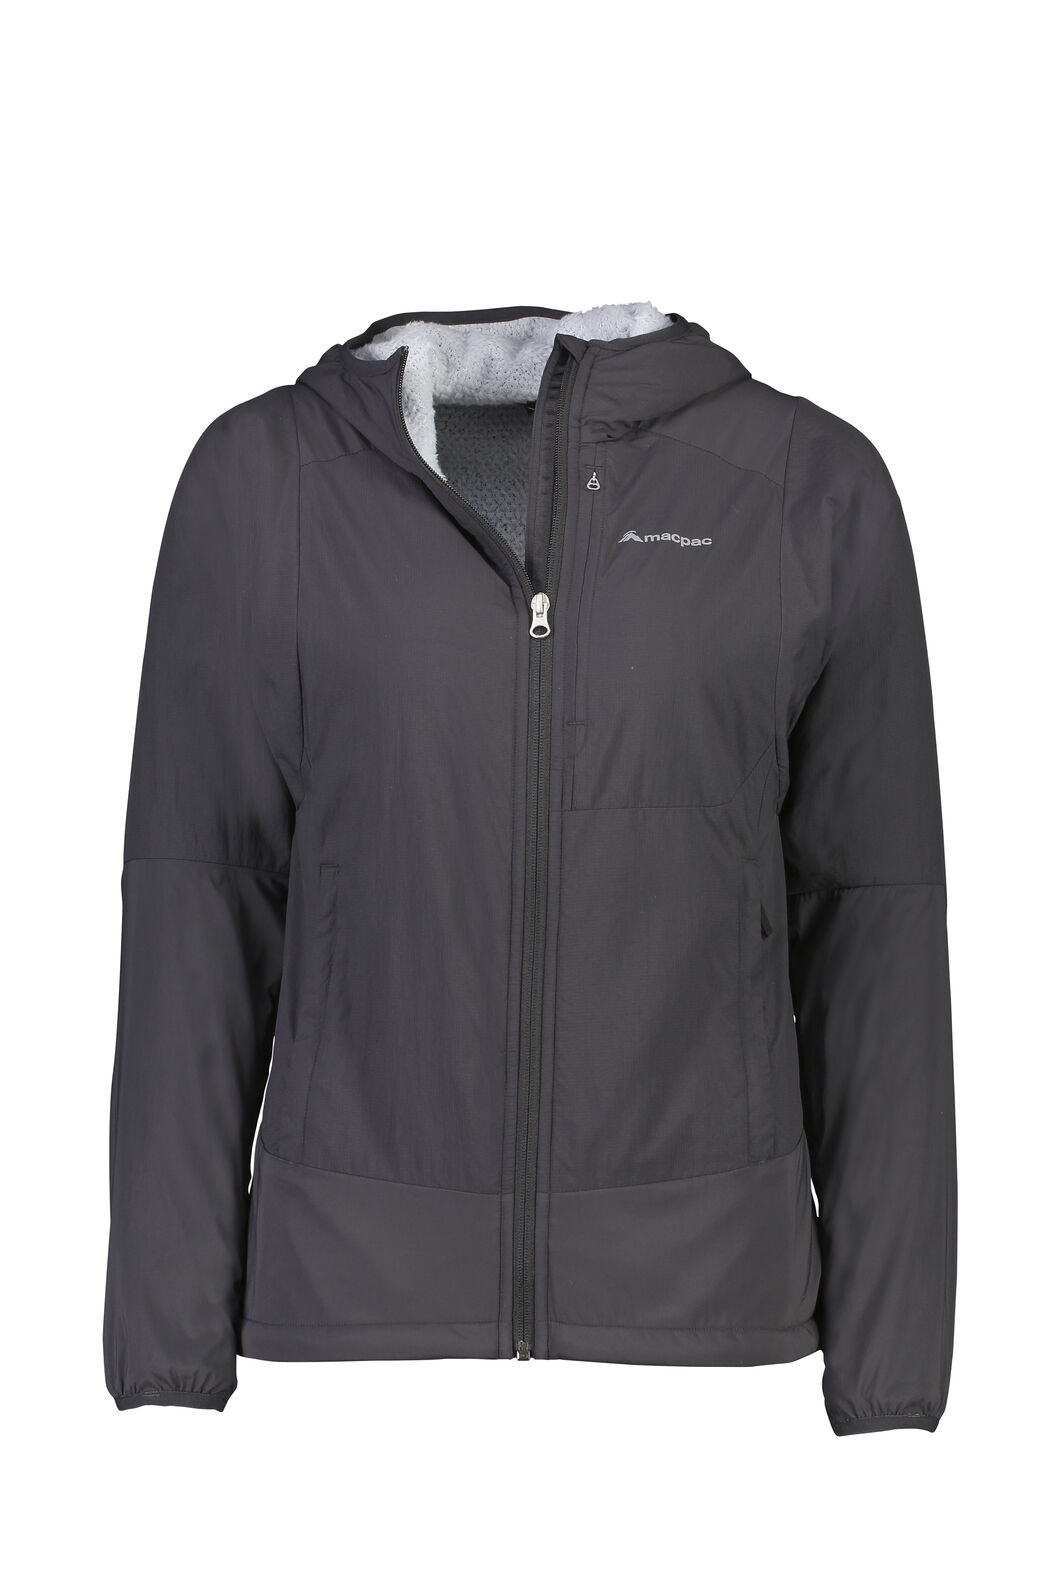 Macpac Pisa Polartec® Hooded Jacket - Women's, Phantom, hi-res